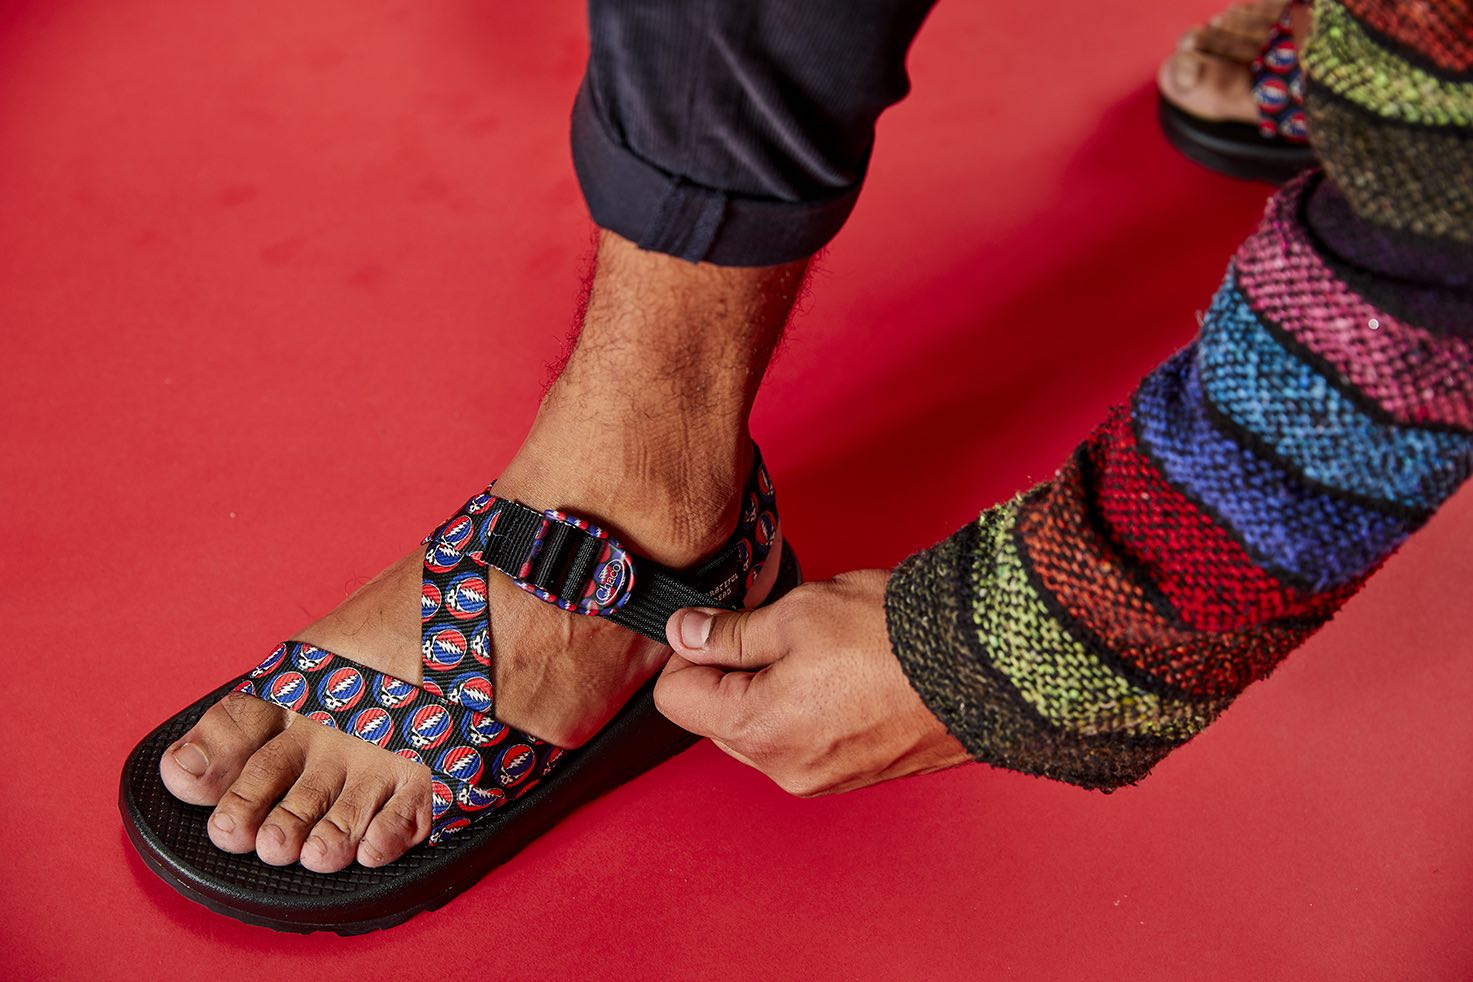 Chaco_FW18_Grateful Dead M Steal Your Face_22 (1).jpg